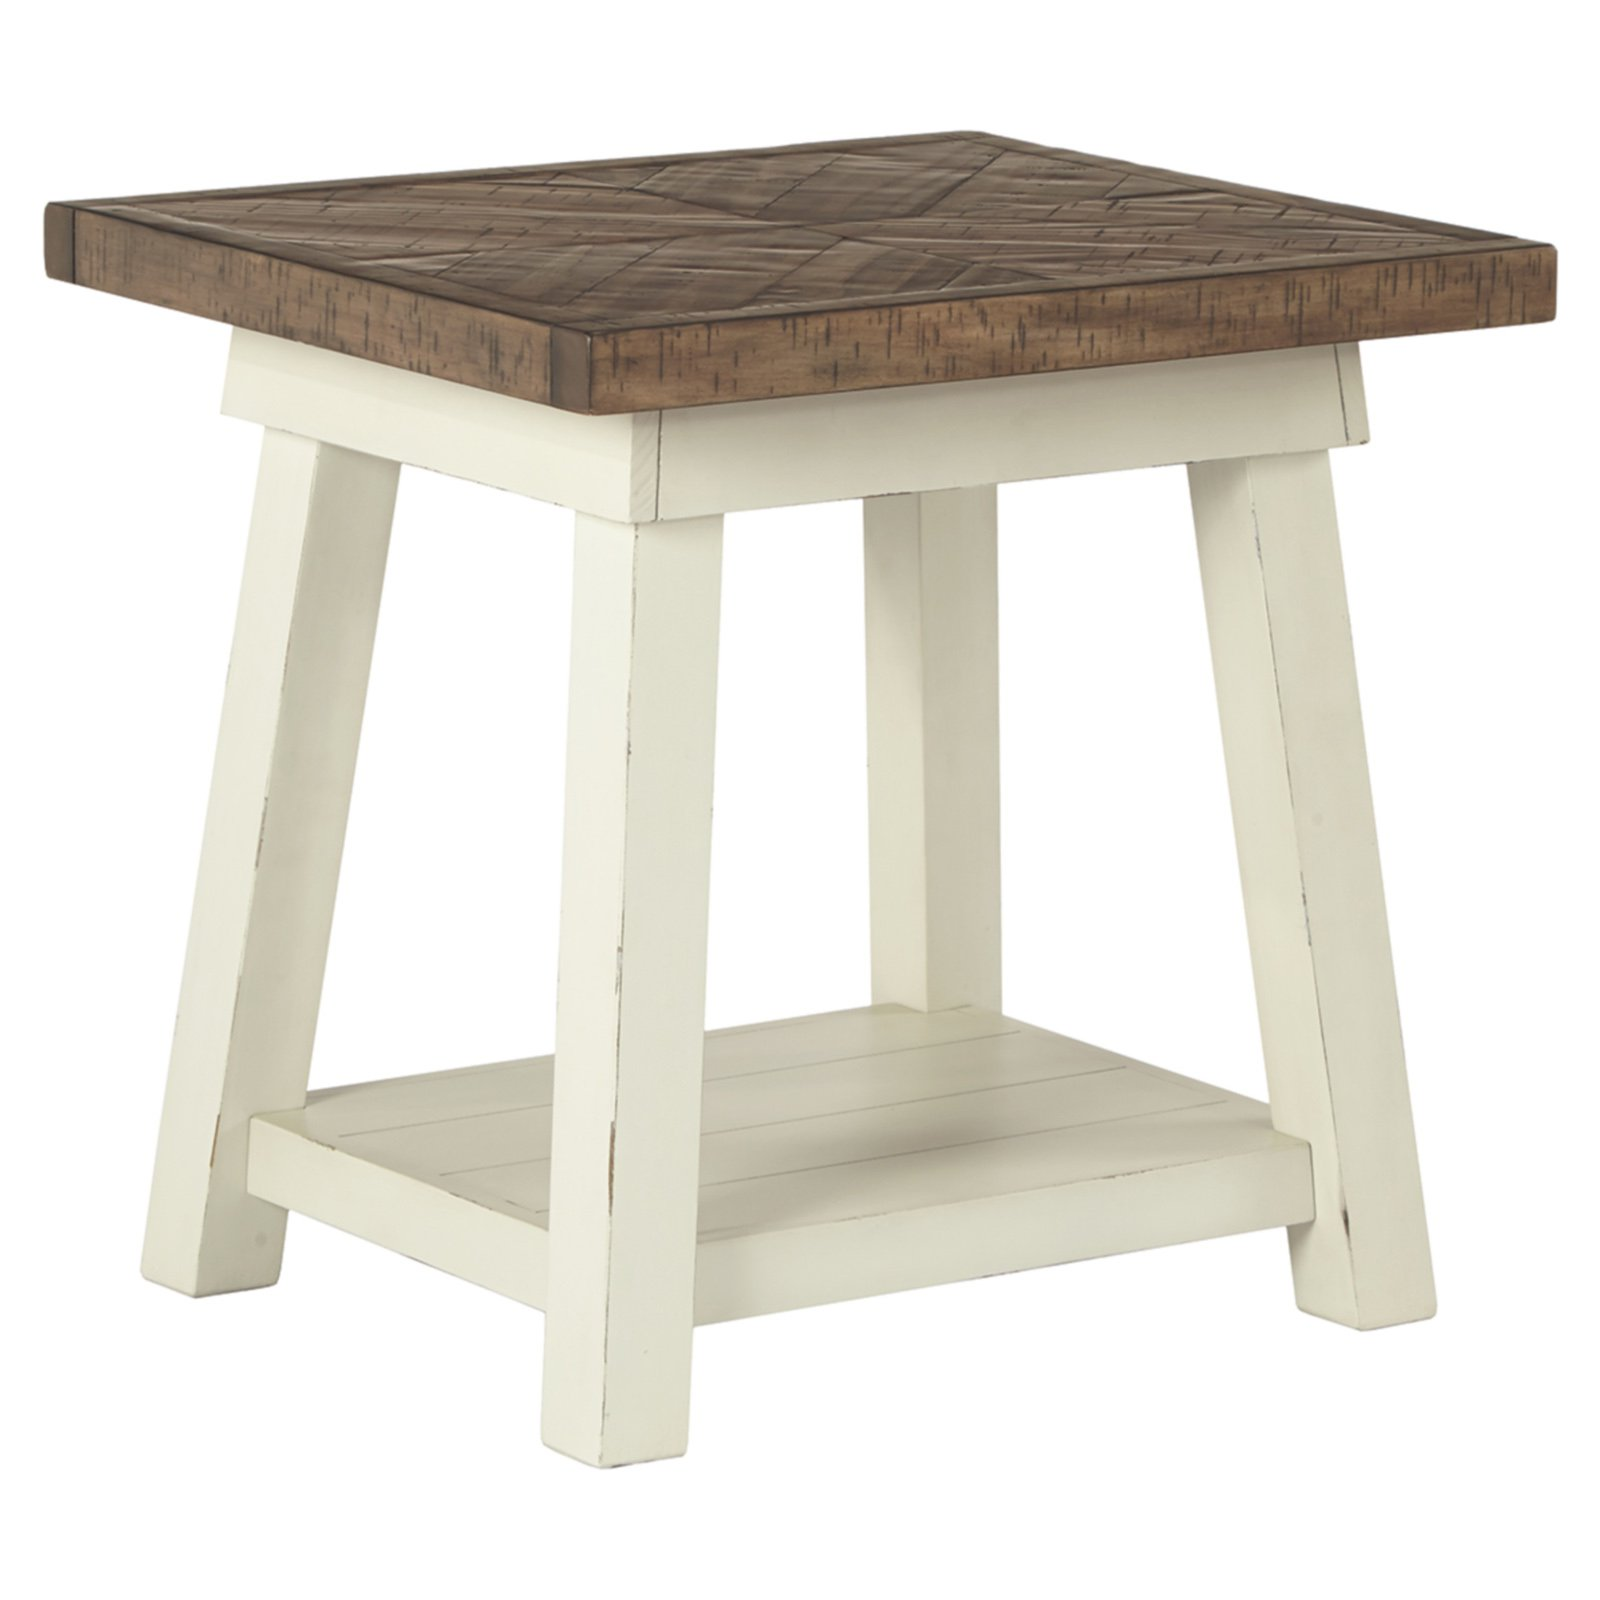 Signature Design by Ashley Stownbranner 22 in. Rectangular End Table